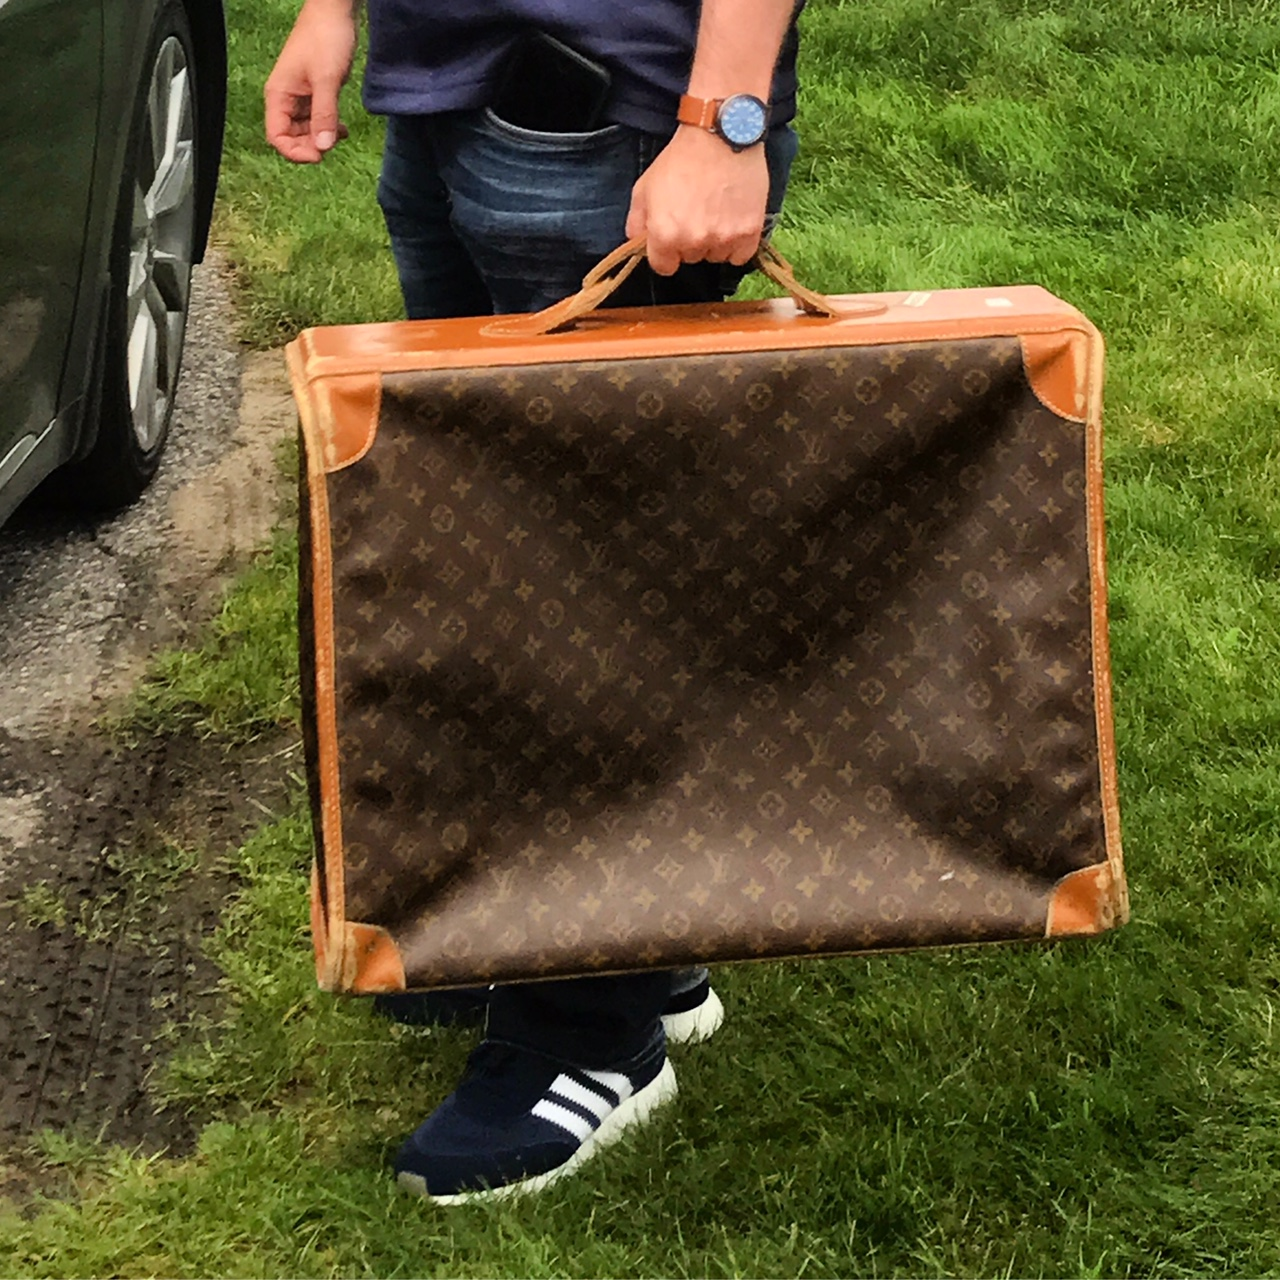 Gabriel Dishaw Louis Vuitton Bag.JPG